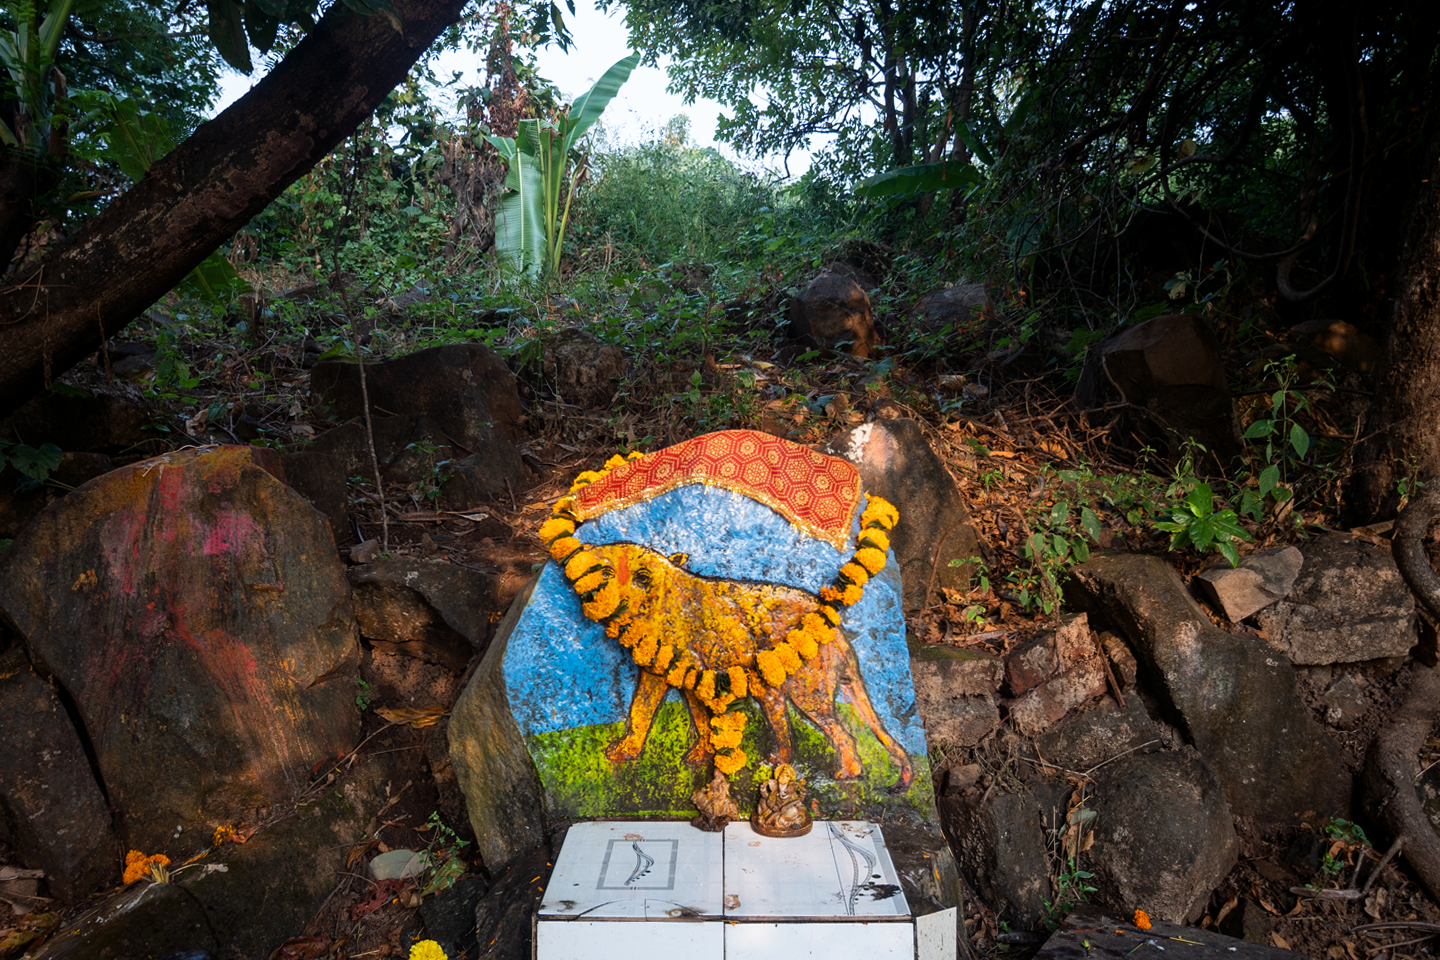 The Waghoba deity is worshipped by the Adivasi communities in Aarey Milk Colony and Sanjay Gandhi National Park. Photo credit: Kartik Chandramouli